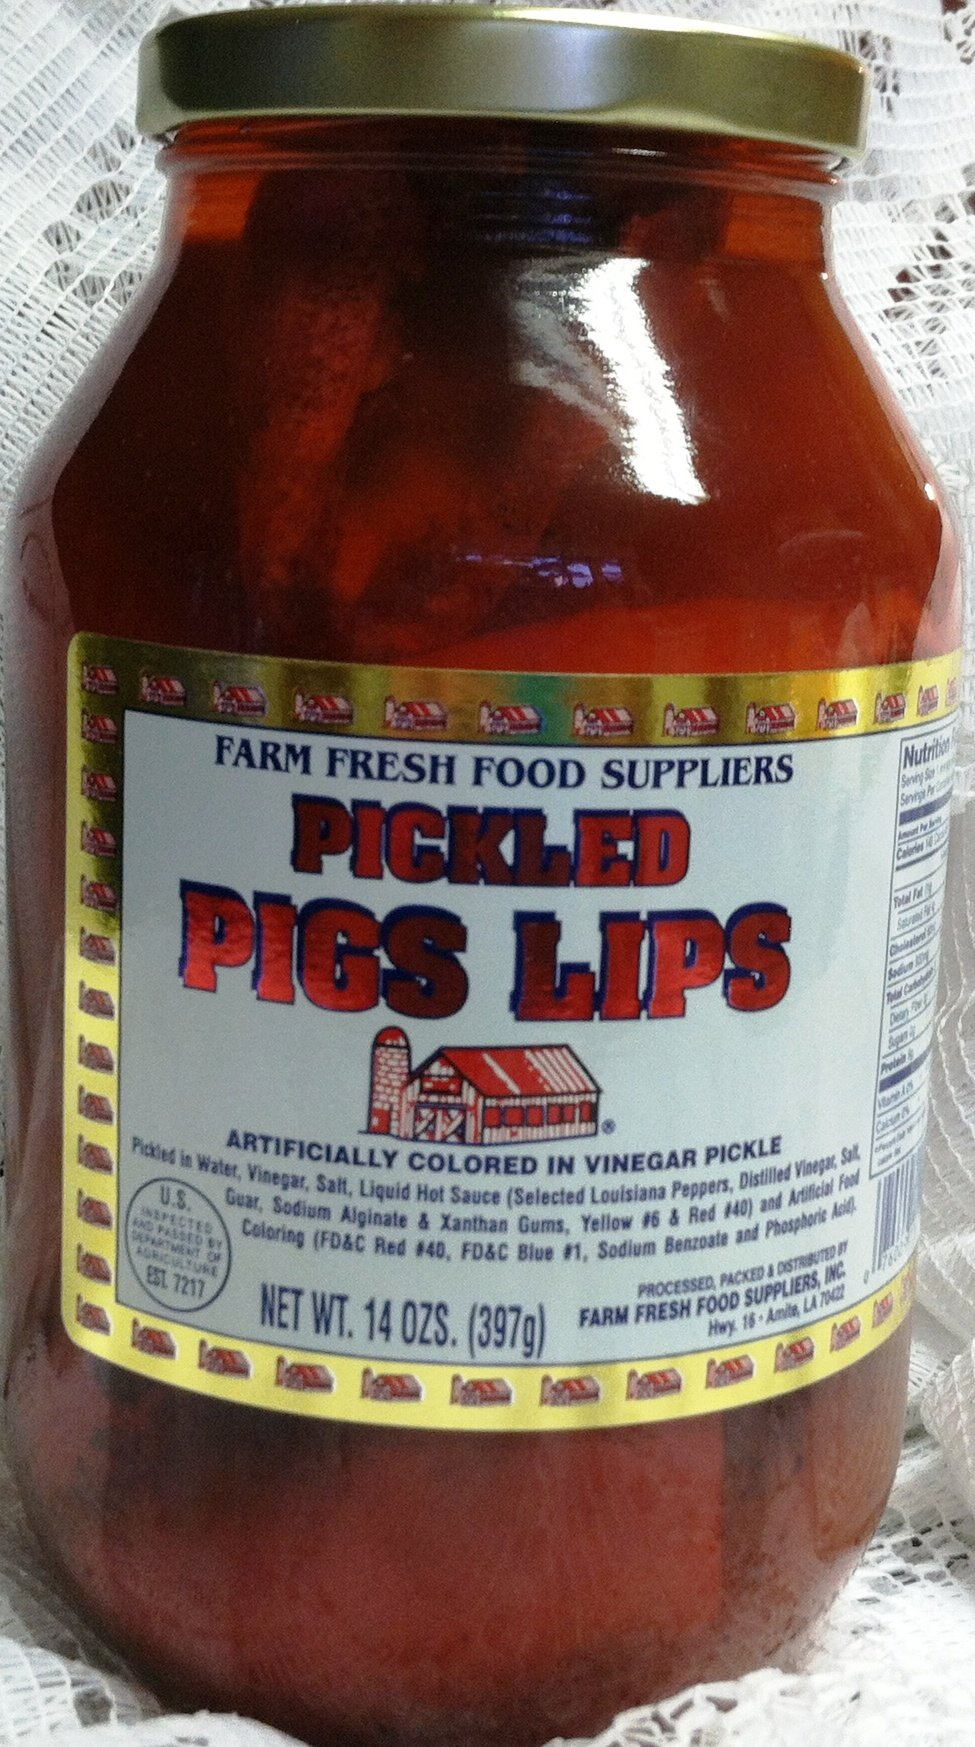 Pickeld Pigs Lips 14 Oz. In a Glass Quart Container by Farm Fresh Food Suppliers